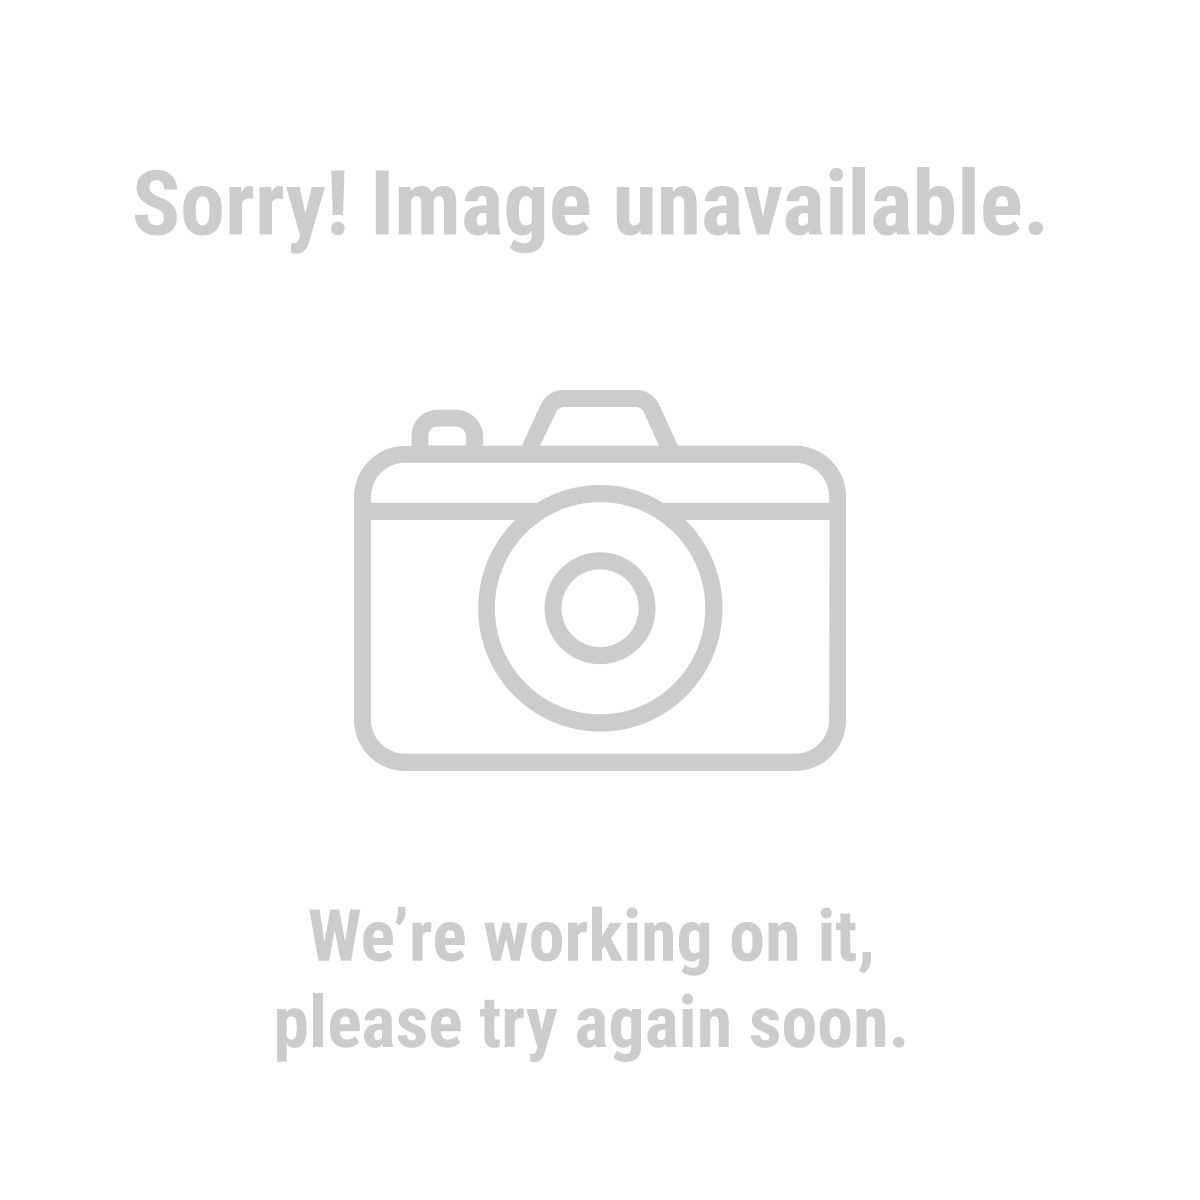 HFT 47677 15 ft. 2'' x 19 ft. 6'' Reflective Heavy Duty Silver Tarp